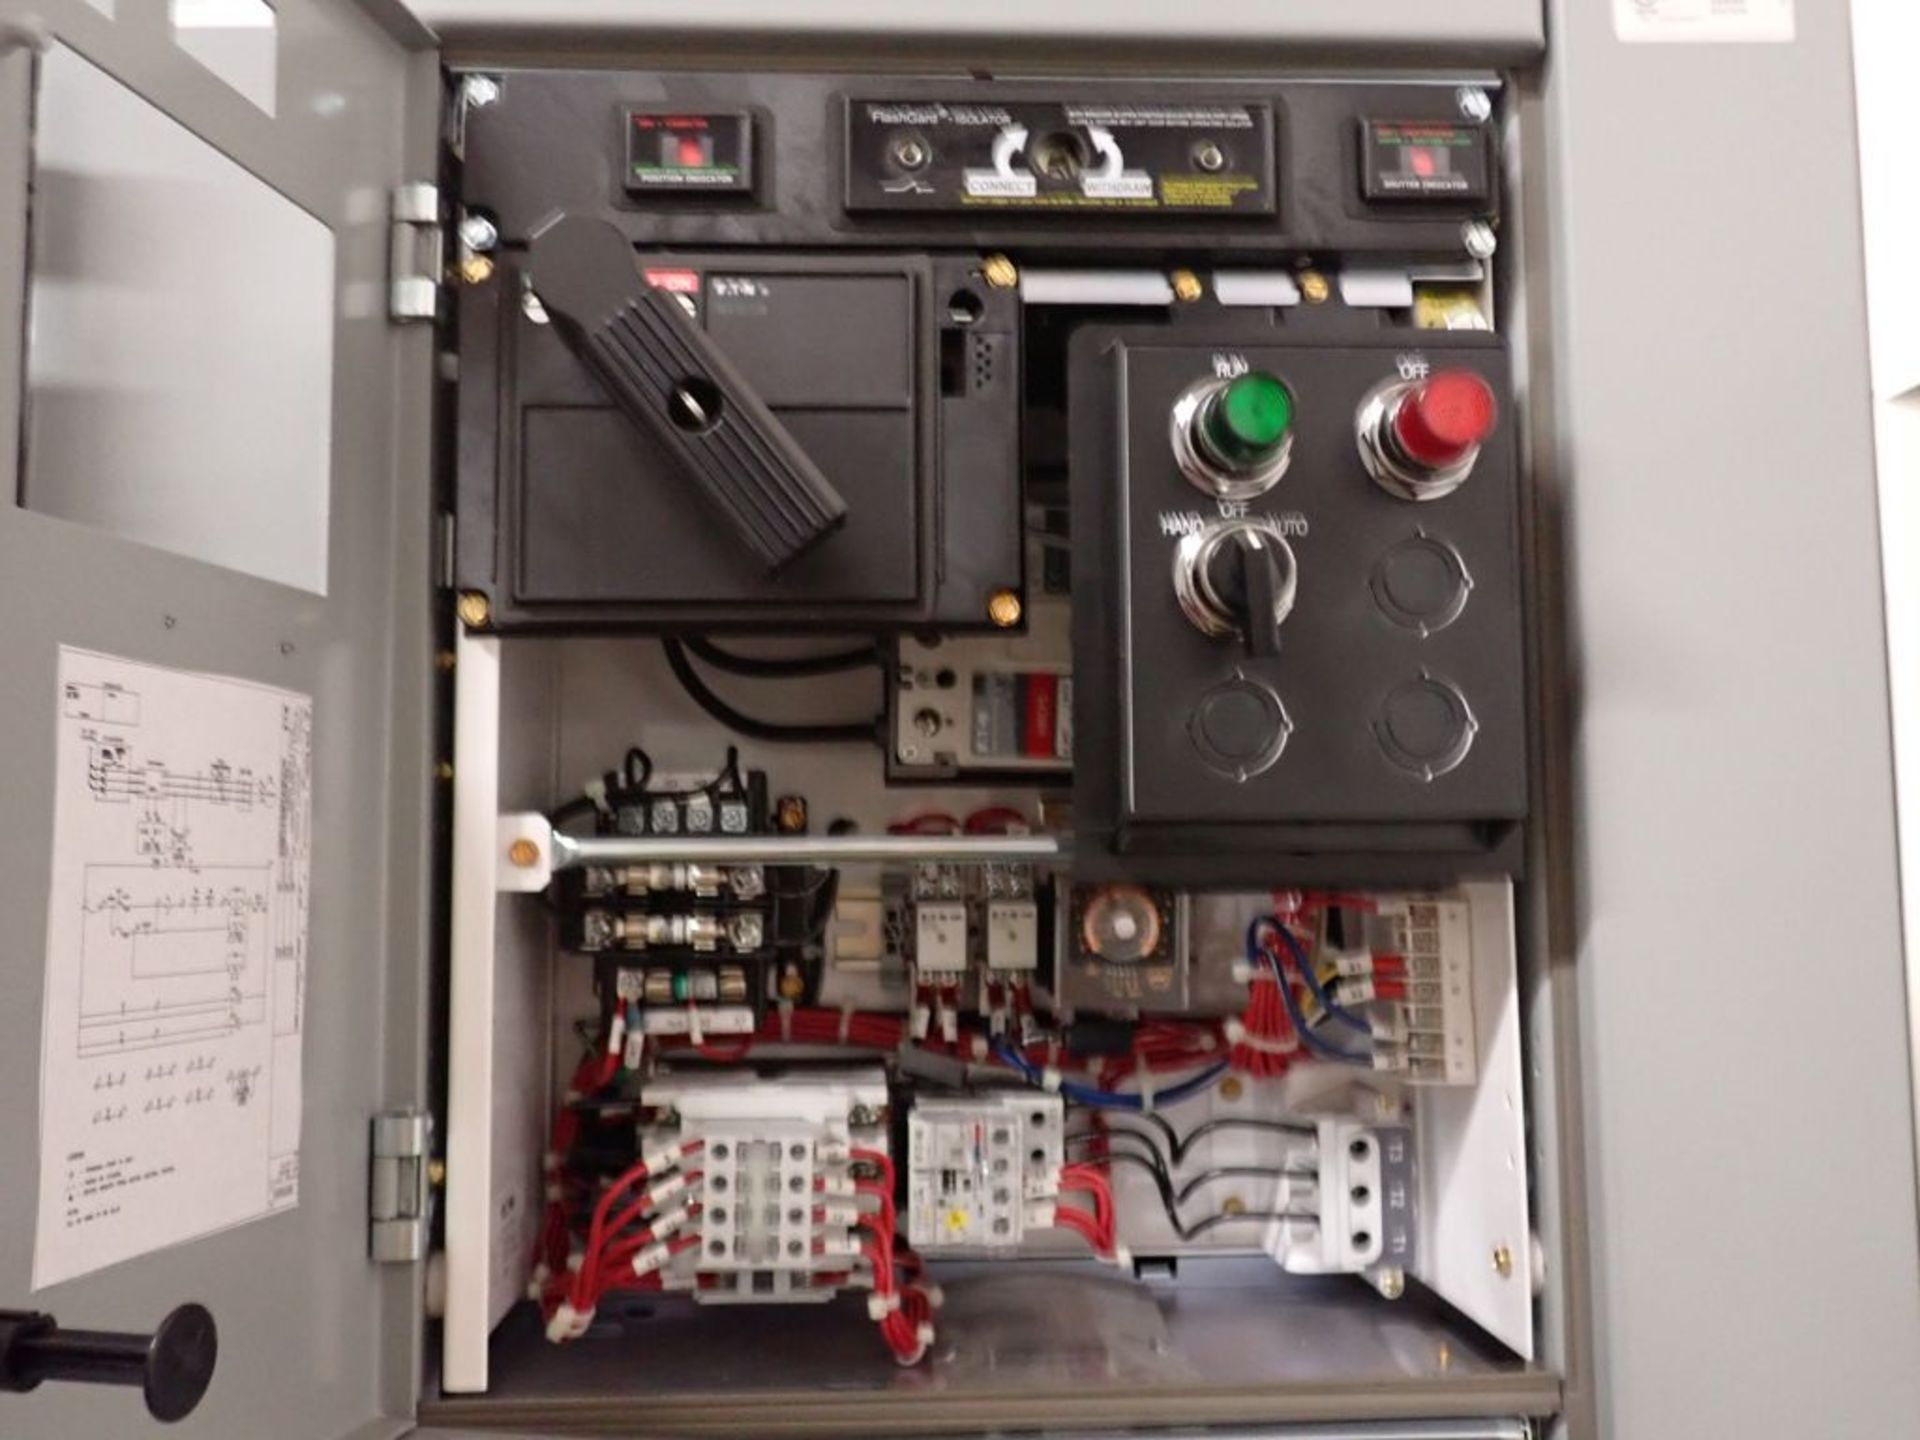 Eaton Freedom 2100 Series Motor Control Center | (11) F206-30A-10HP; (5) F206-15A-10HP; (1) SVX900- - Image 84 of 102